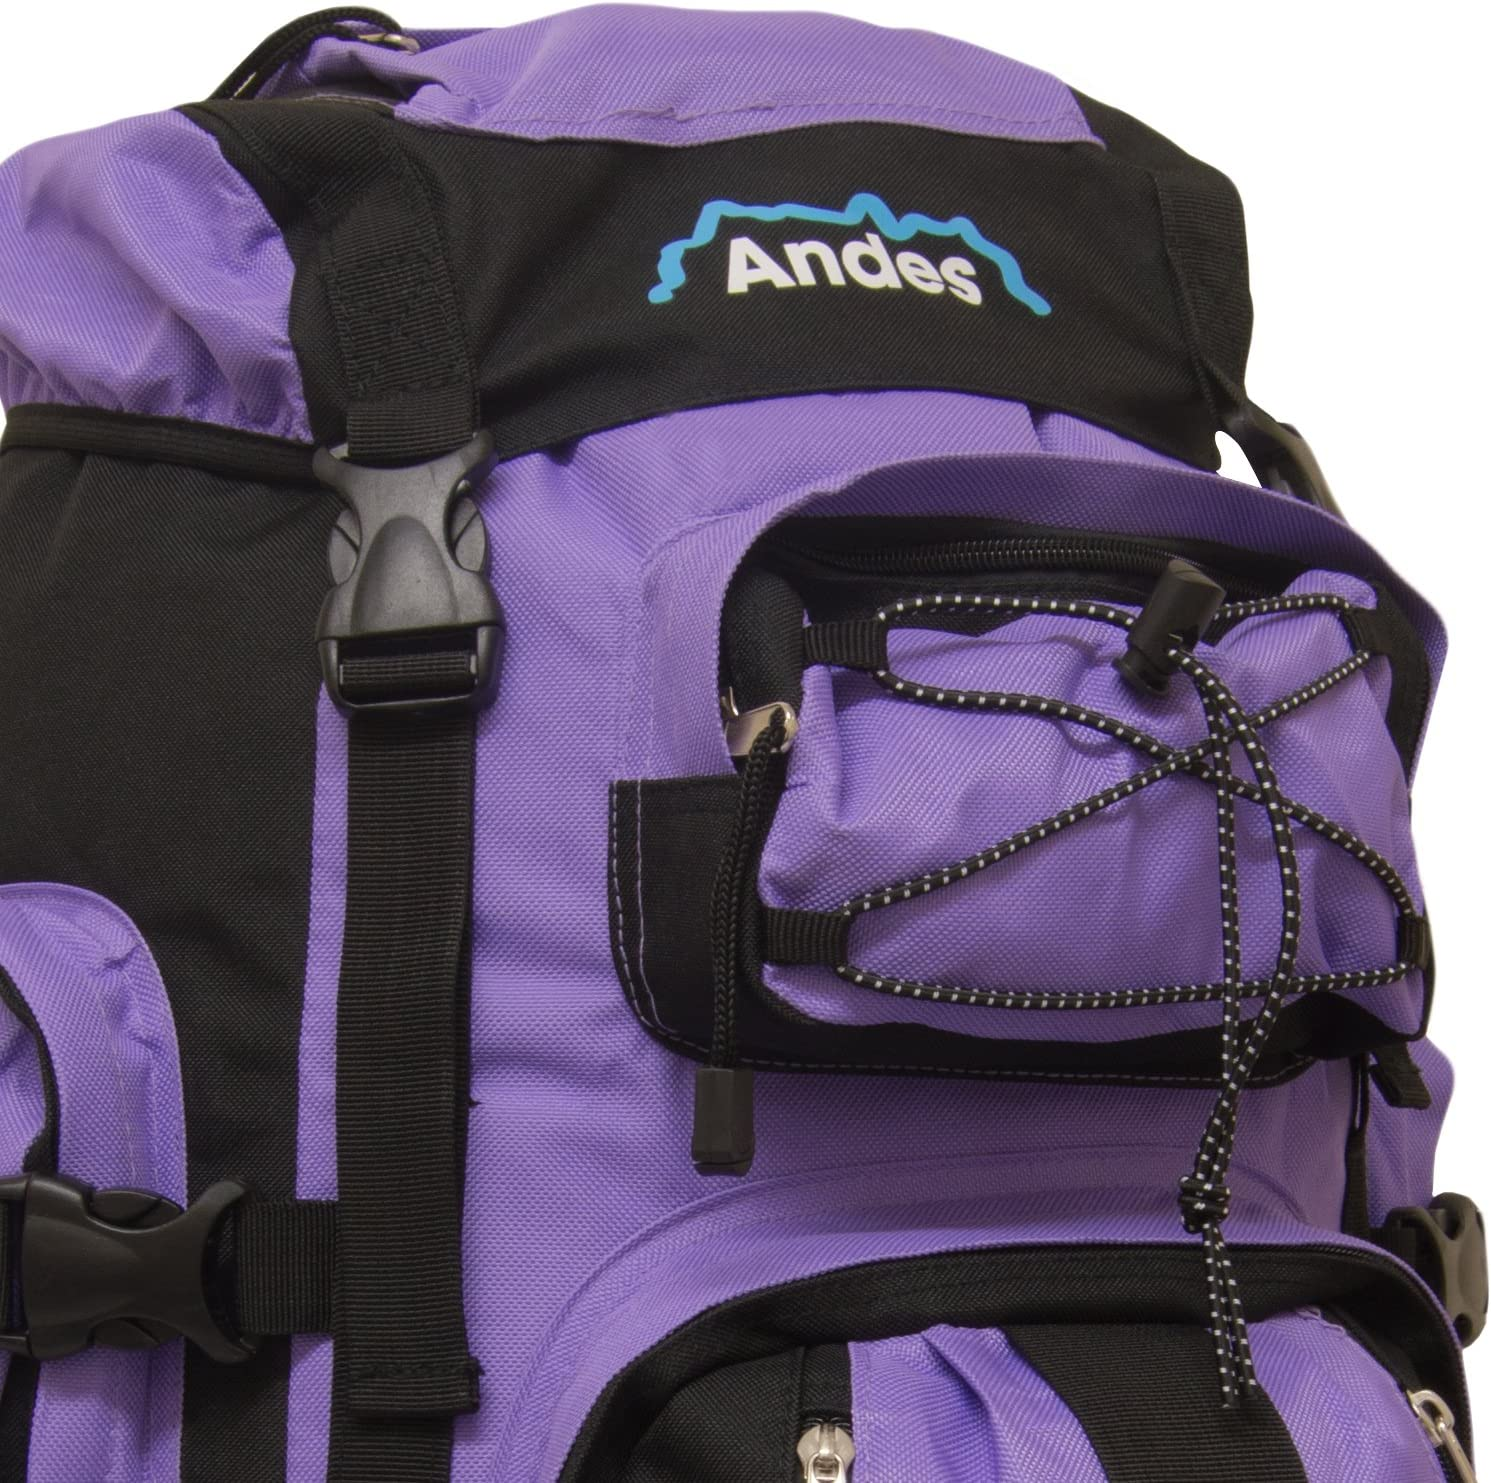 Andes Ramada 120L Extra Large Hiking Camping Backpack//Rucksack Luggage Bag